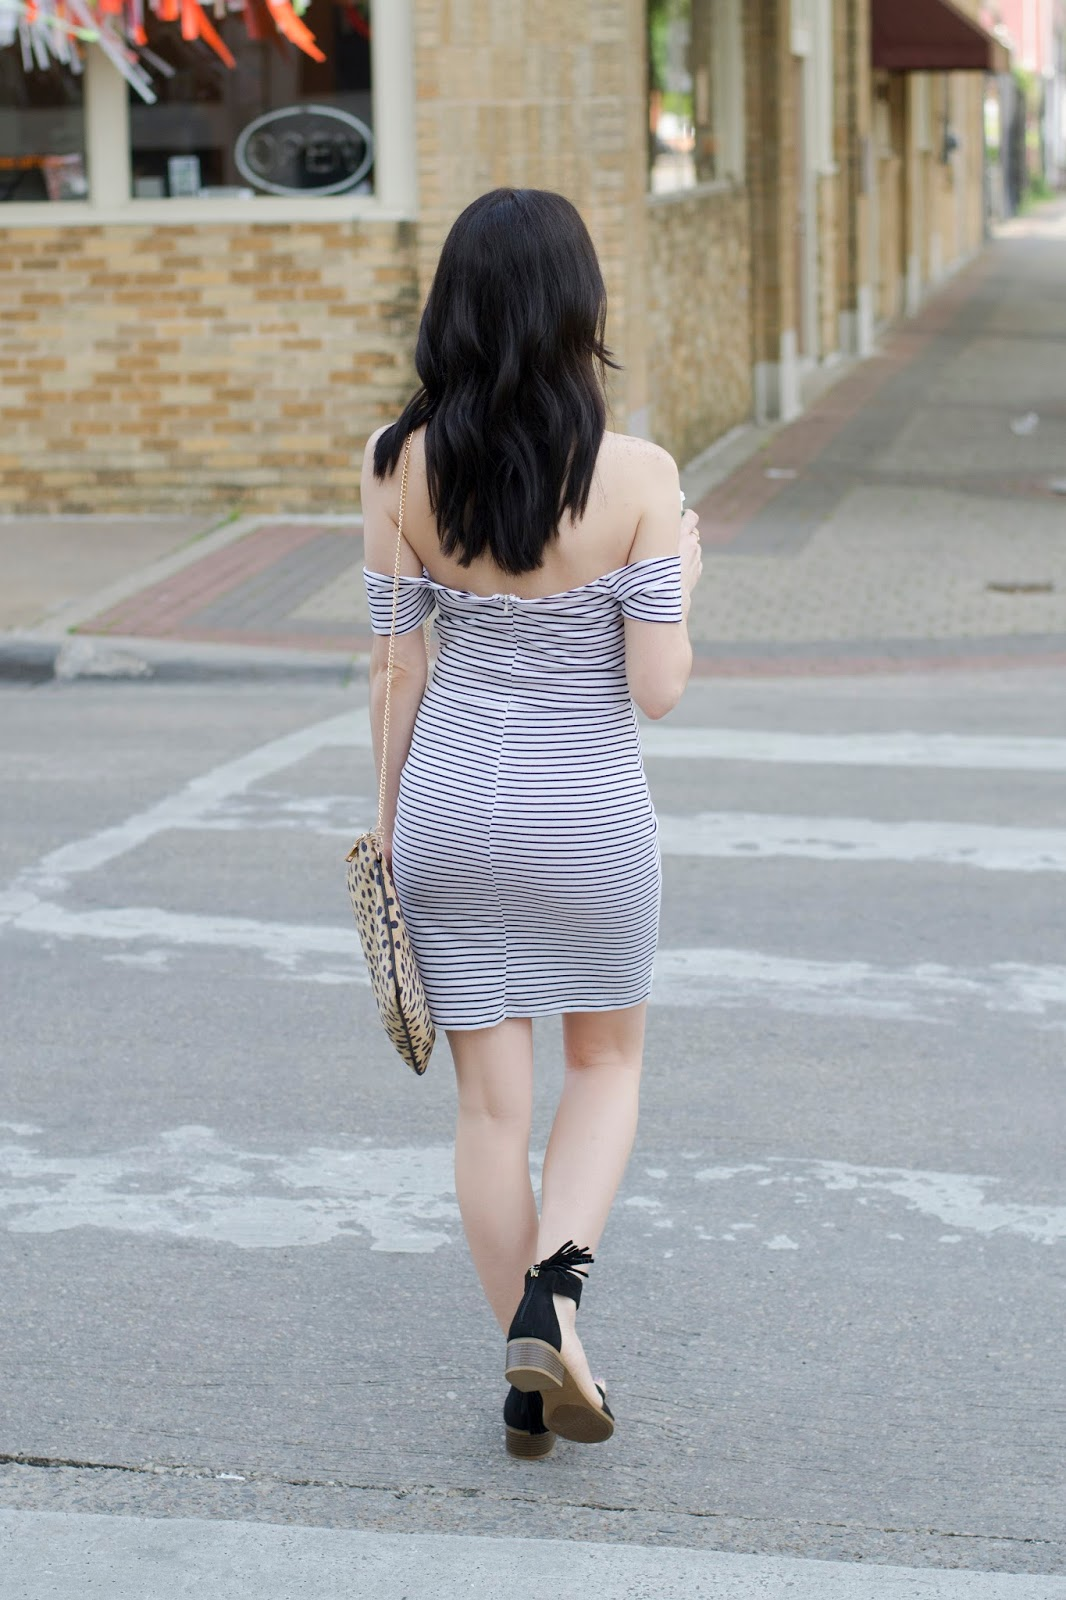 Walking across the street in black tassel sandals and short off the shoulder striped dress